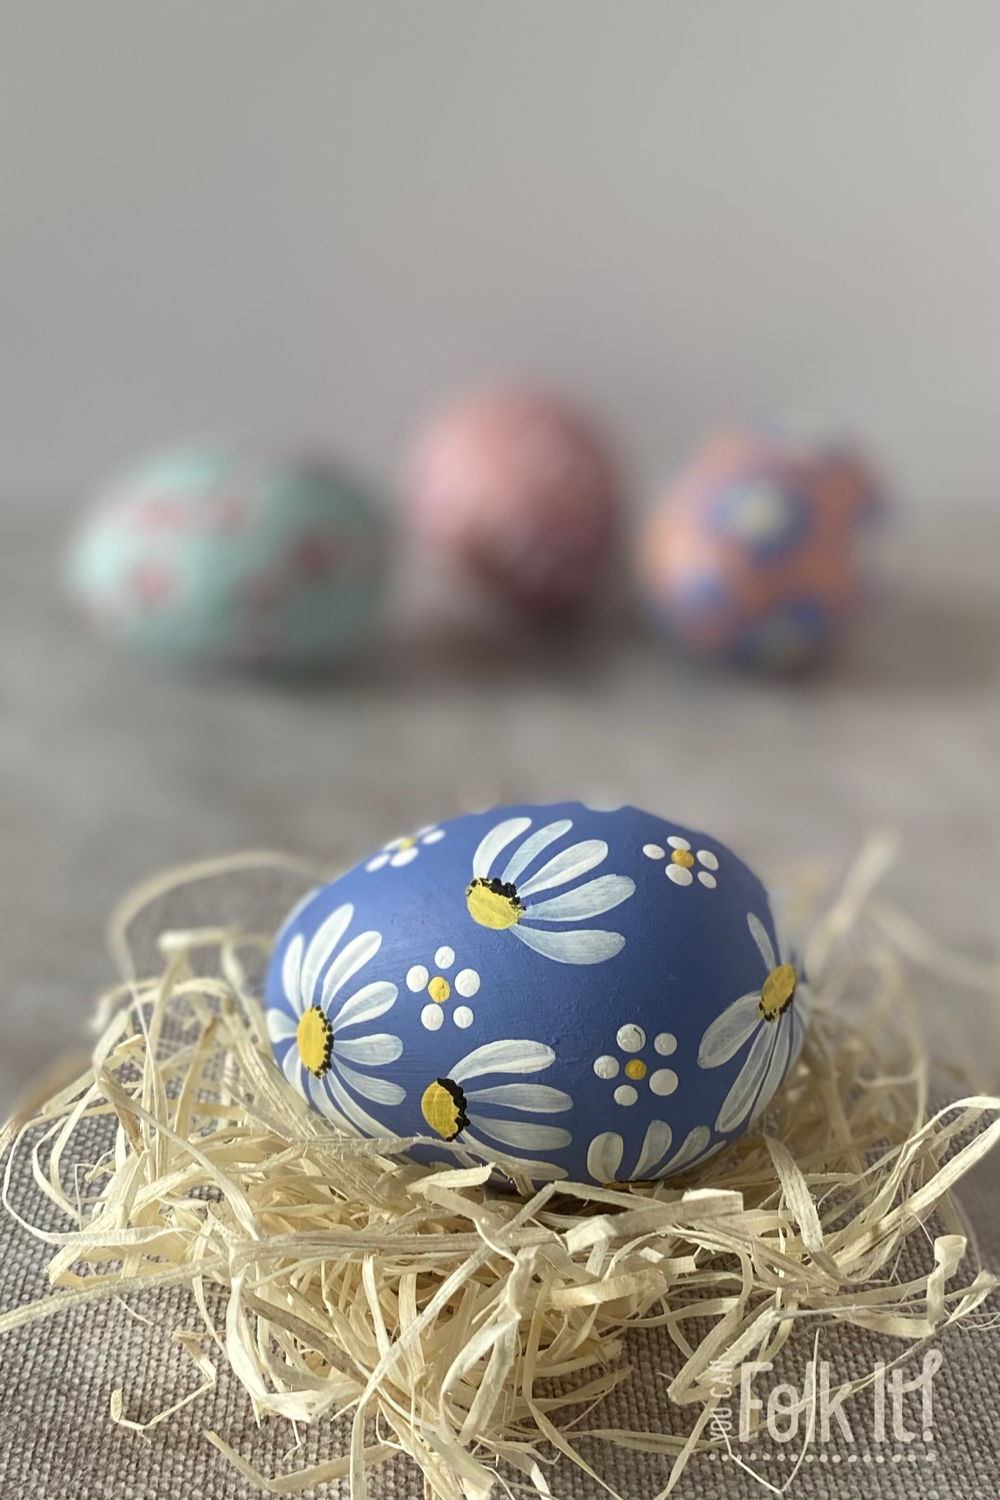 Ceramic easter egg painted in blue and hand painted with daisies from You Can Folk It's painting masterclass for beginner painters